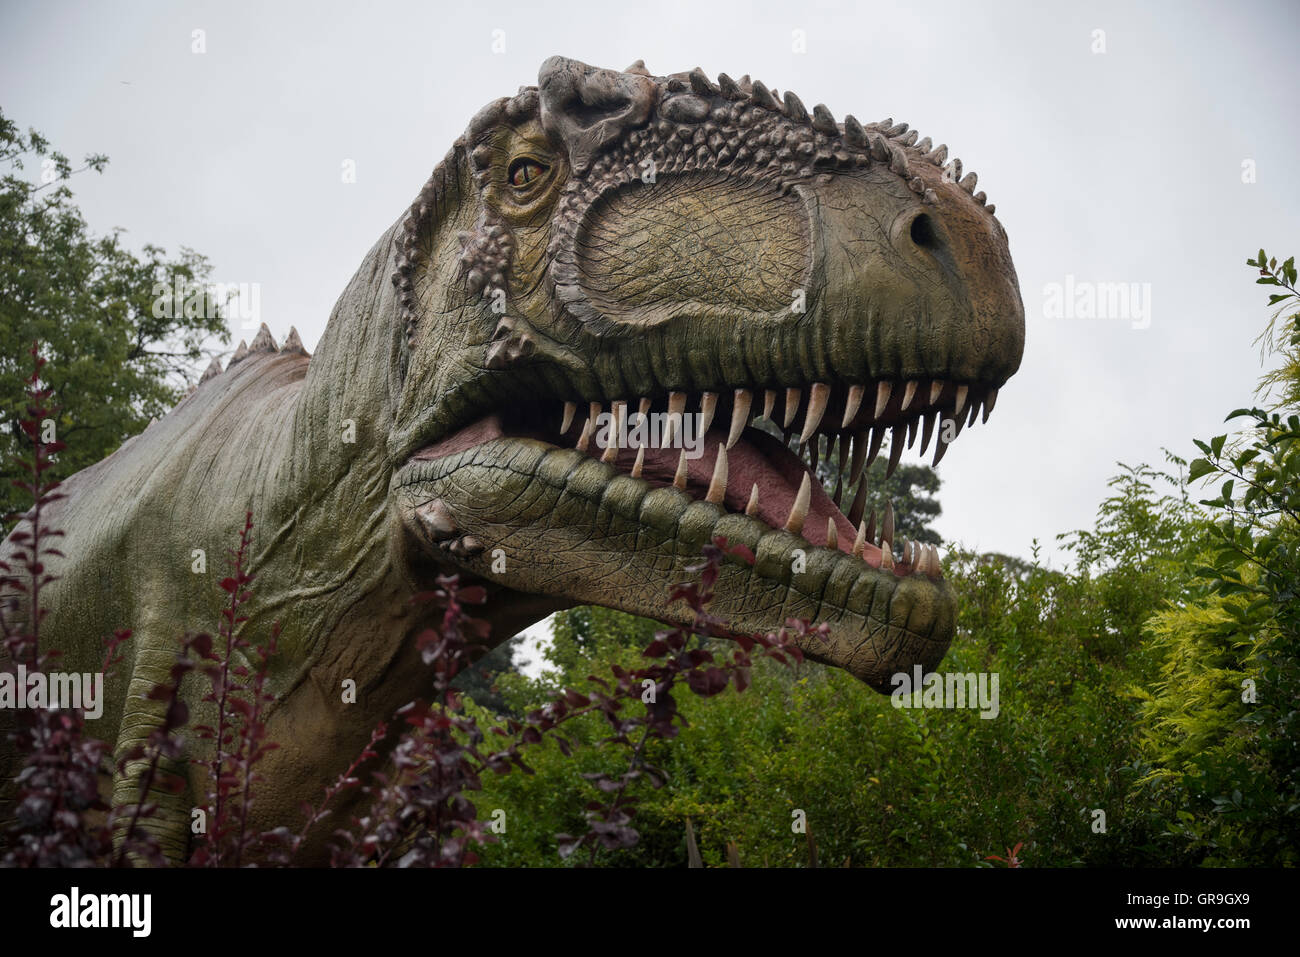 Gigantosaurus dinosaur at Chester Zoo,  Cheshire, UK - Stock Image